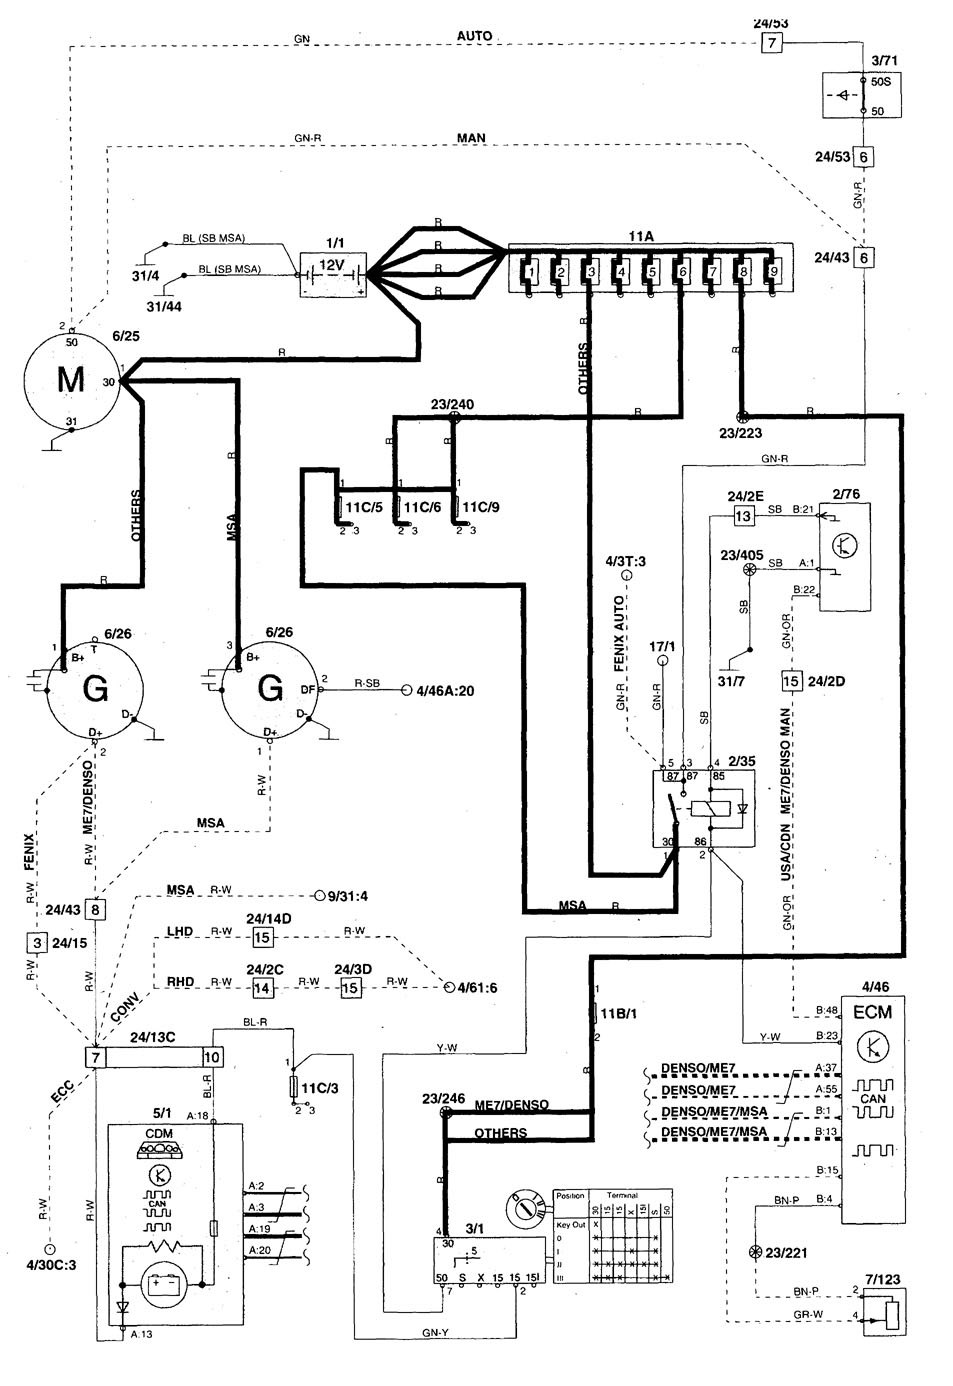 volvo c70 wiring diagram charging system 1 1999 volvo c70 (1999 2004) wiring diagrams charging system c70 wiring diagram at bakdesigns.co